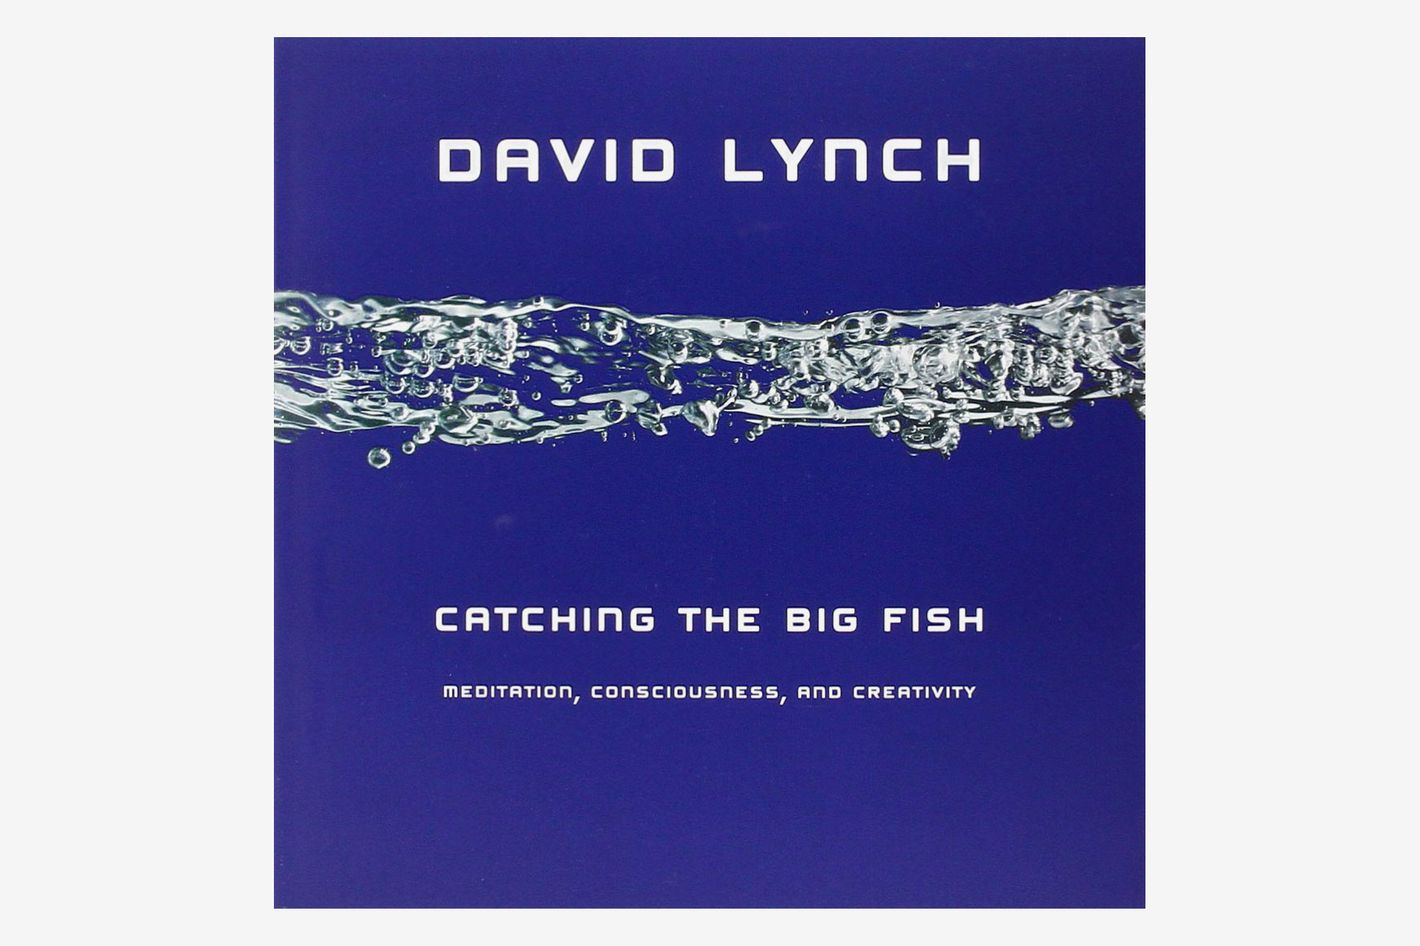 Catching the Big Fish: Meditation, Consciousness, and Creativity, by David Lynch